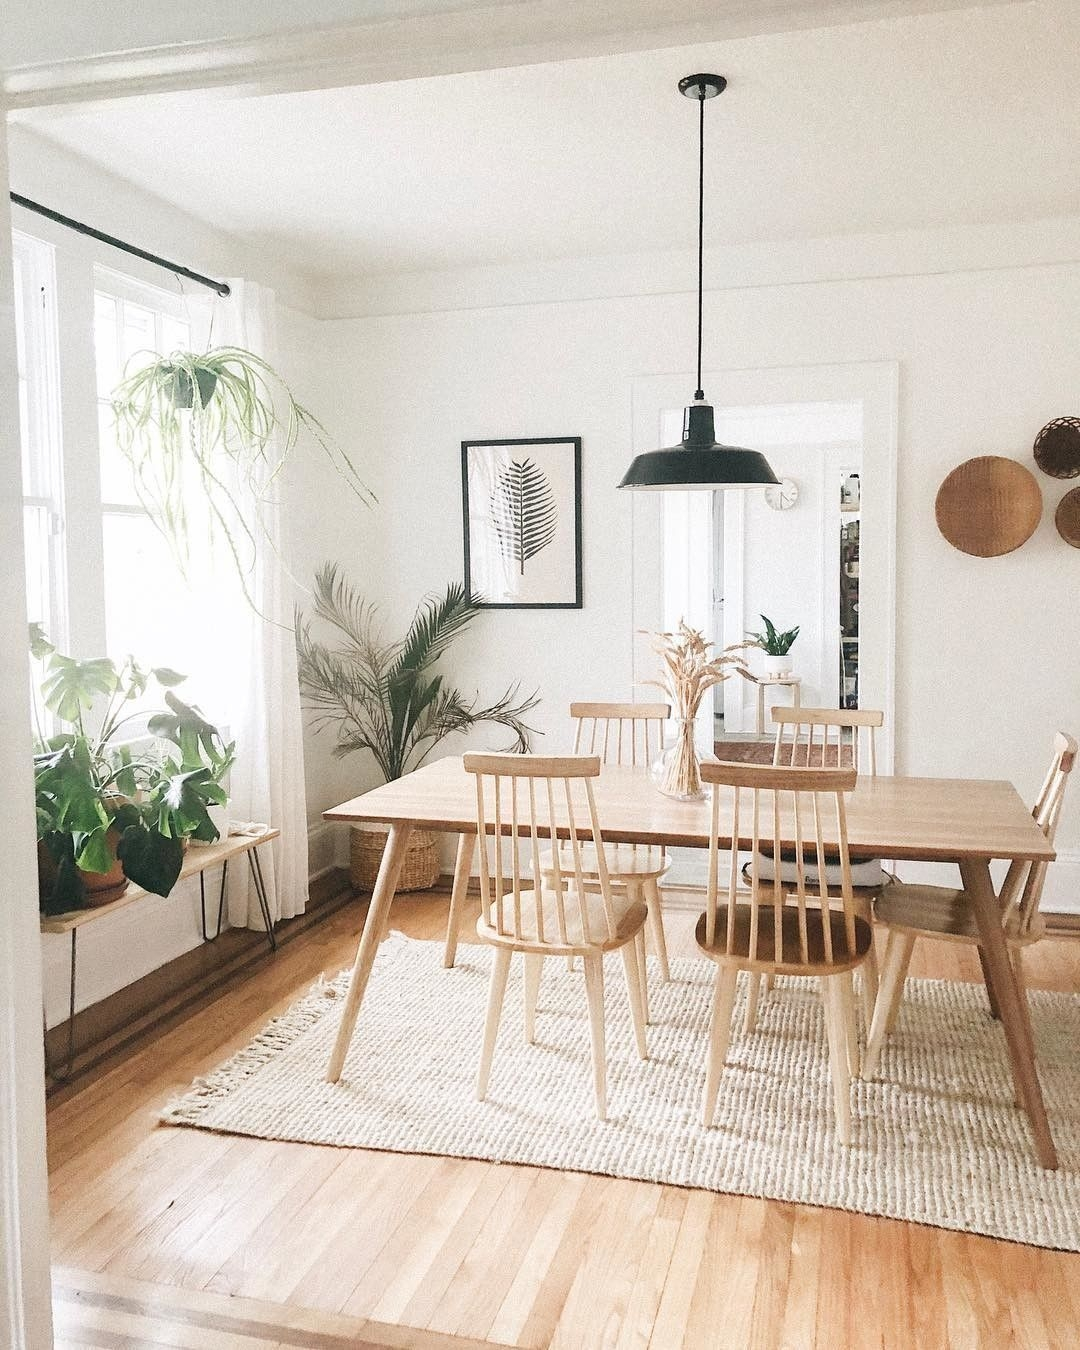 20+ Latest Interior Decorating Ideas For Your Dream Home ...